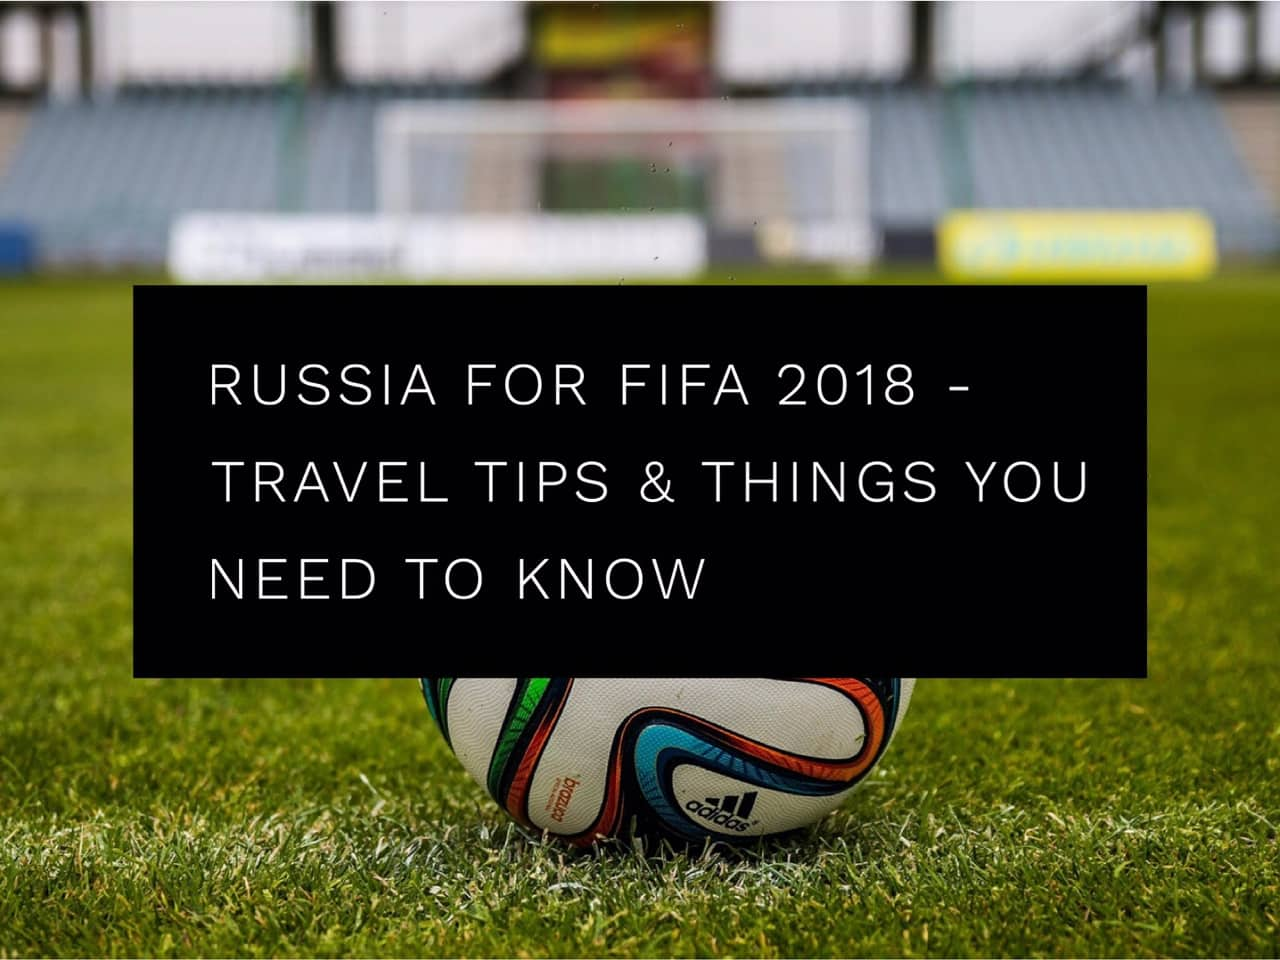 Tips for travelling to Russia for the FIFA World Cup 2018